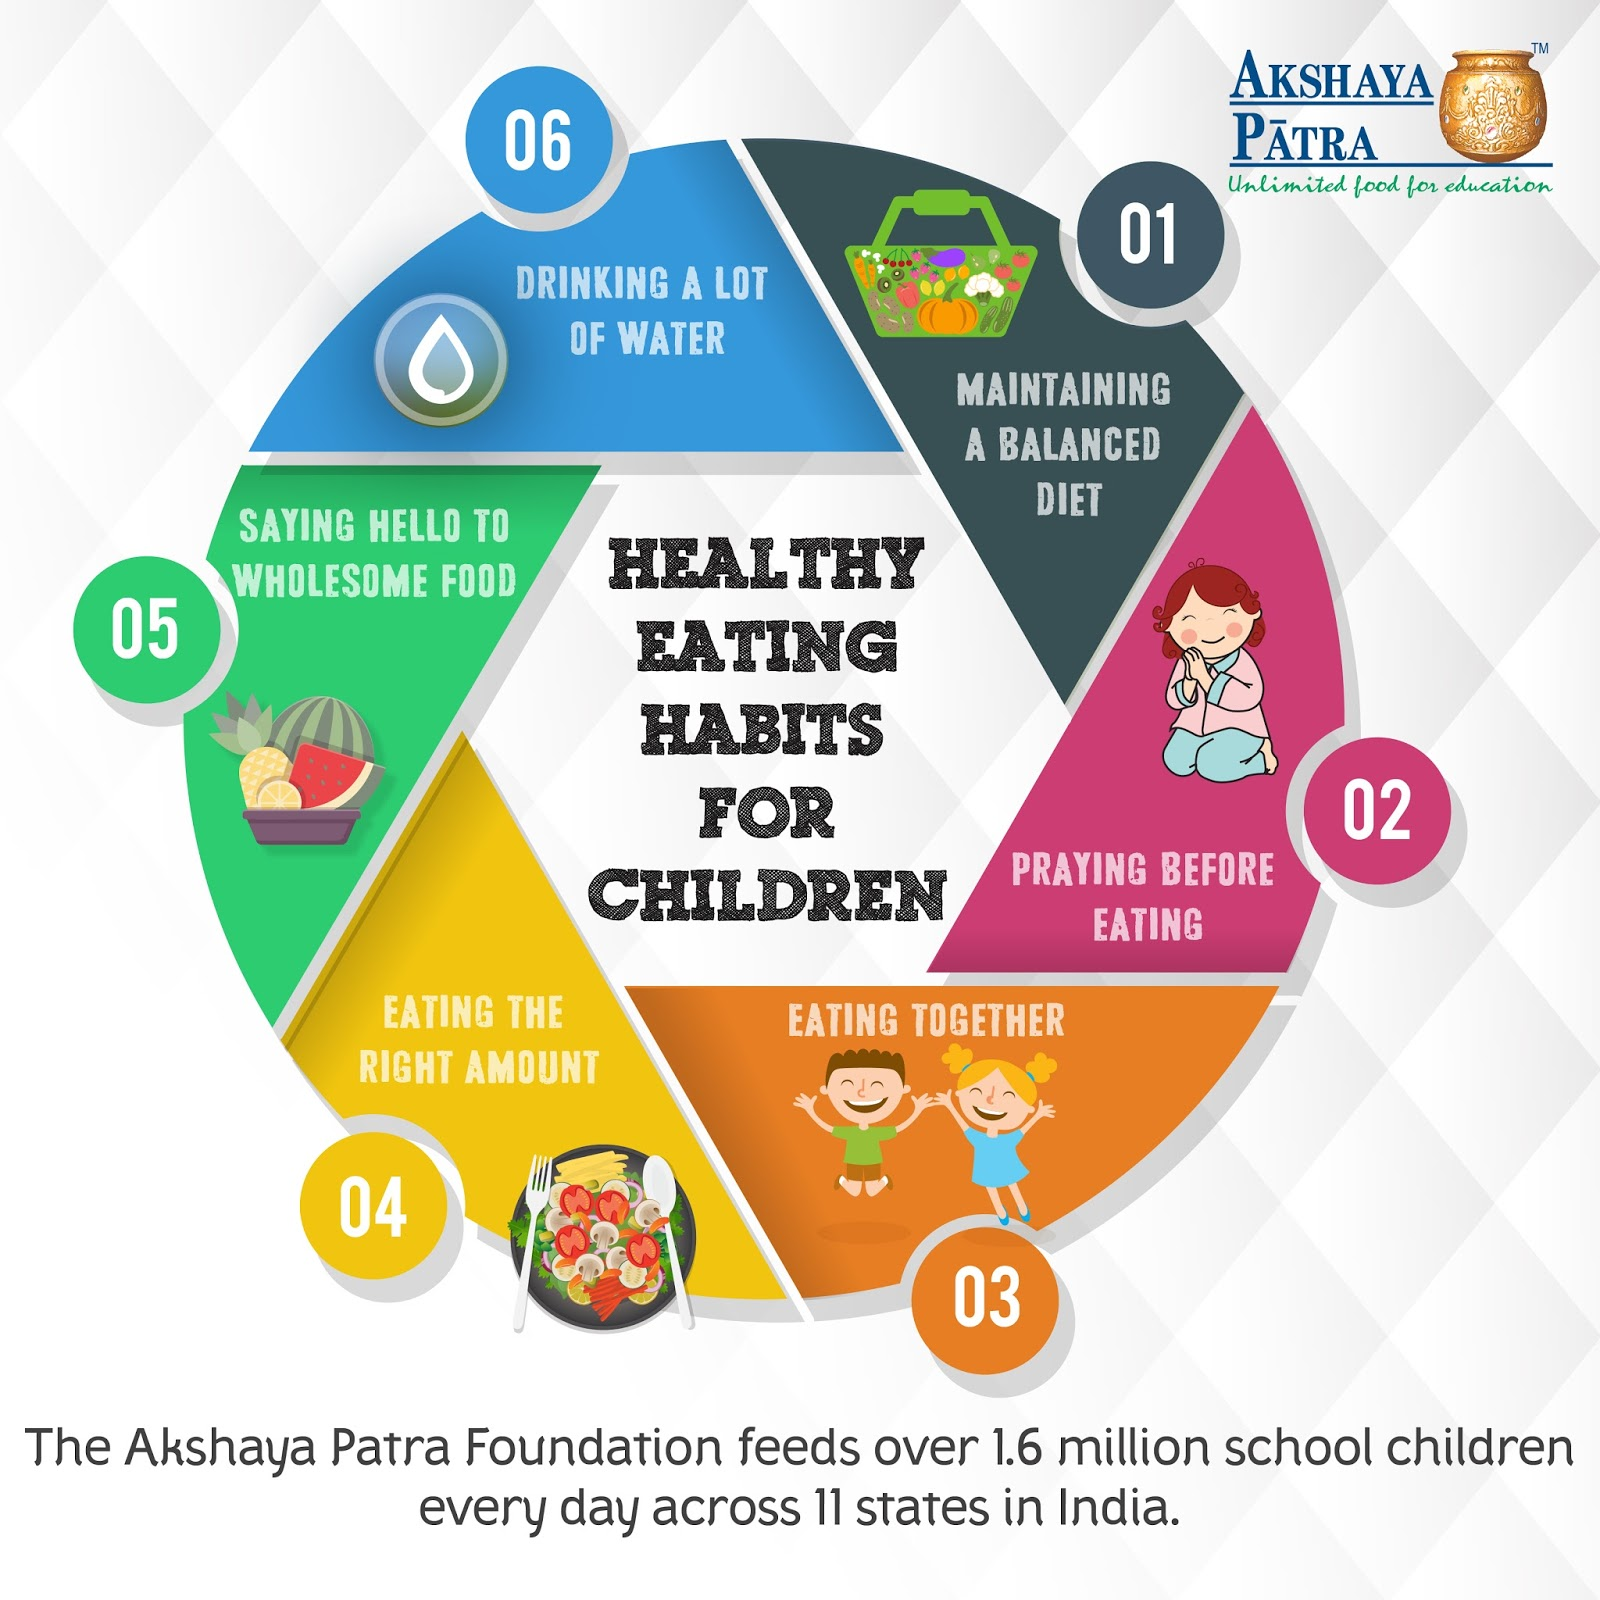 10 Healthy Eating Habits for Children by Akshaya Patra ...